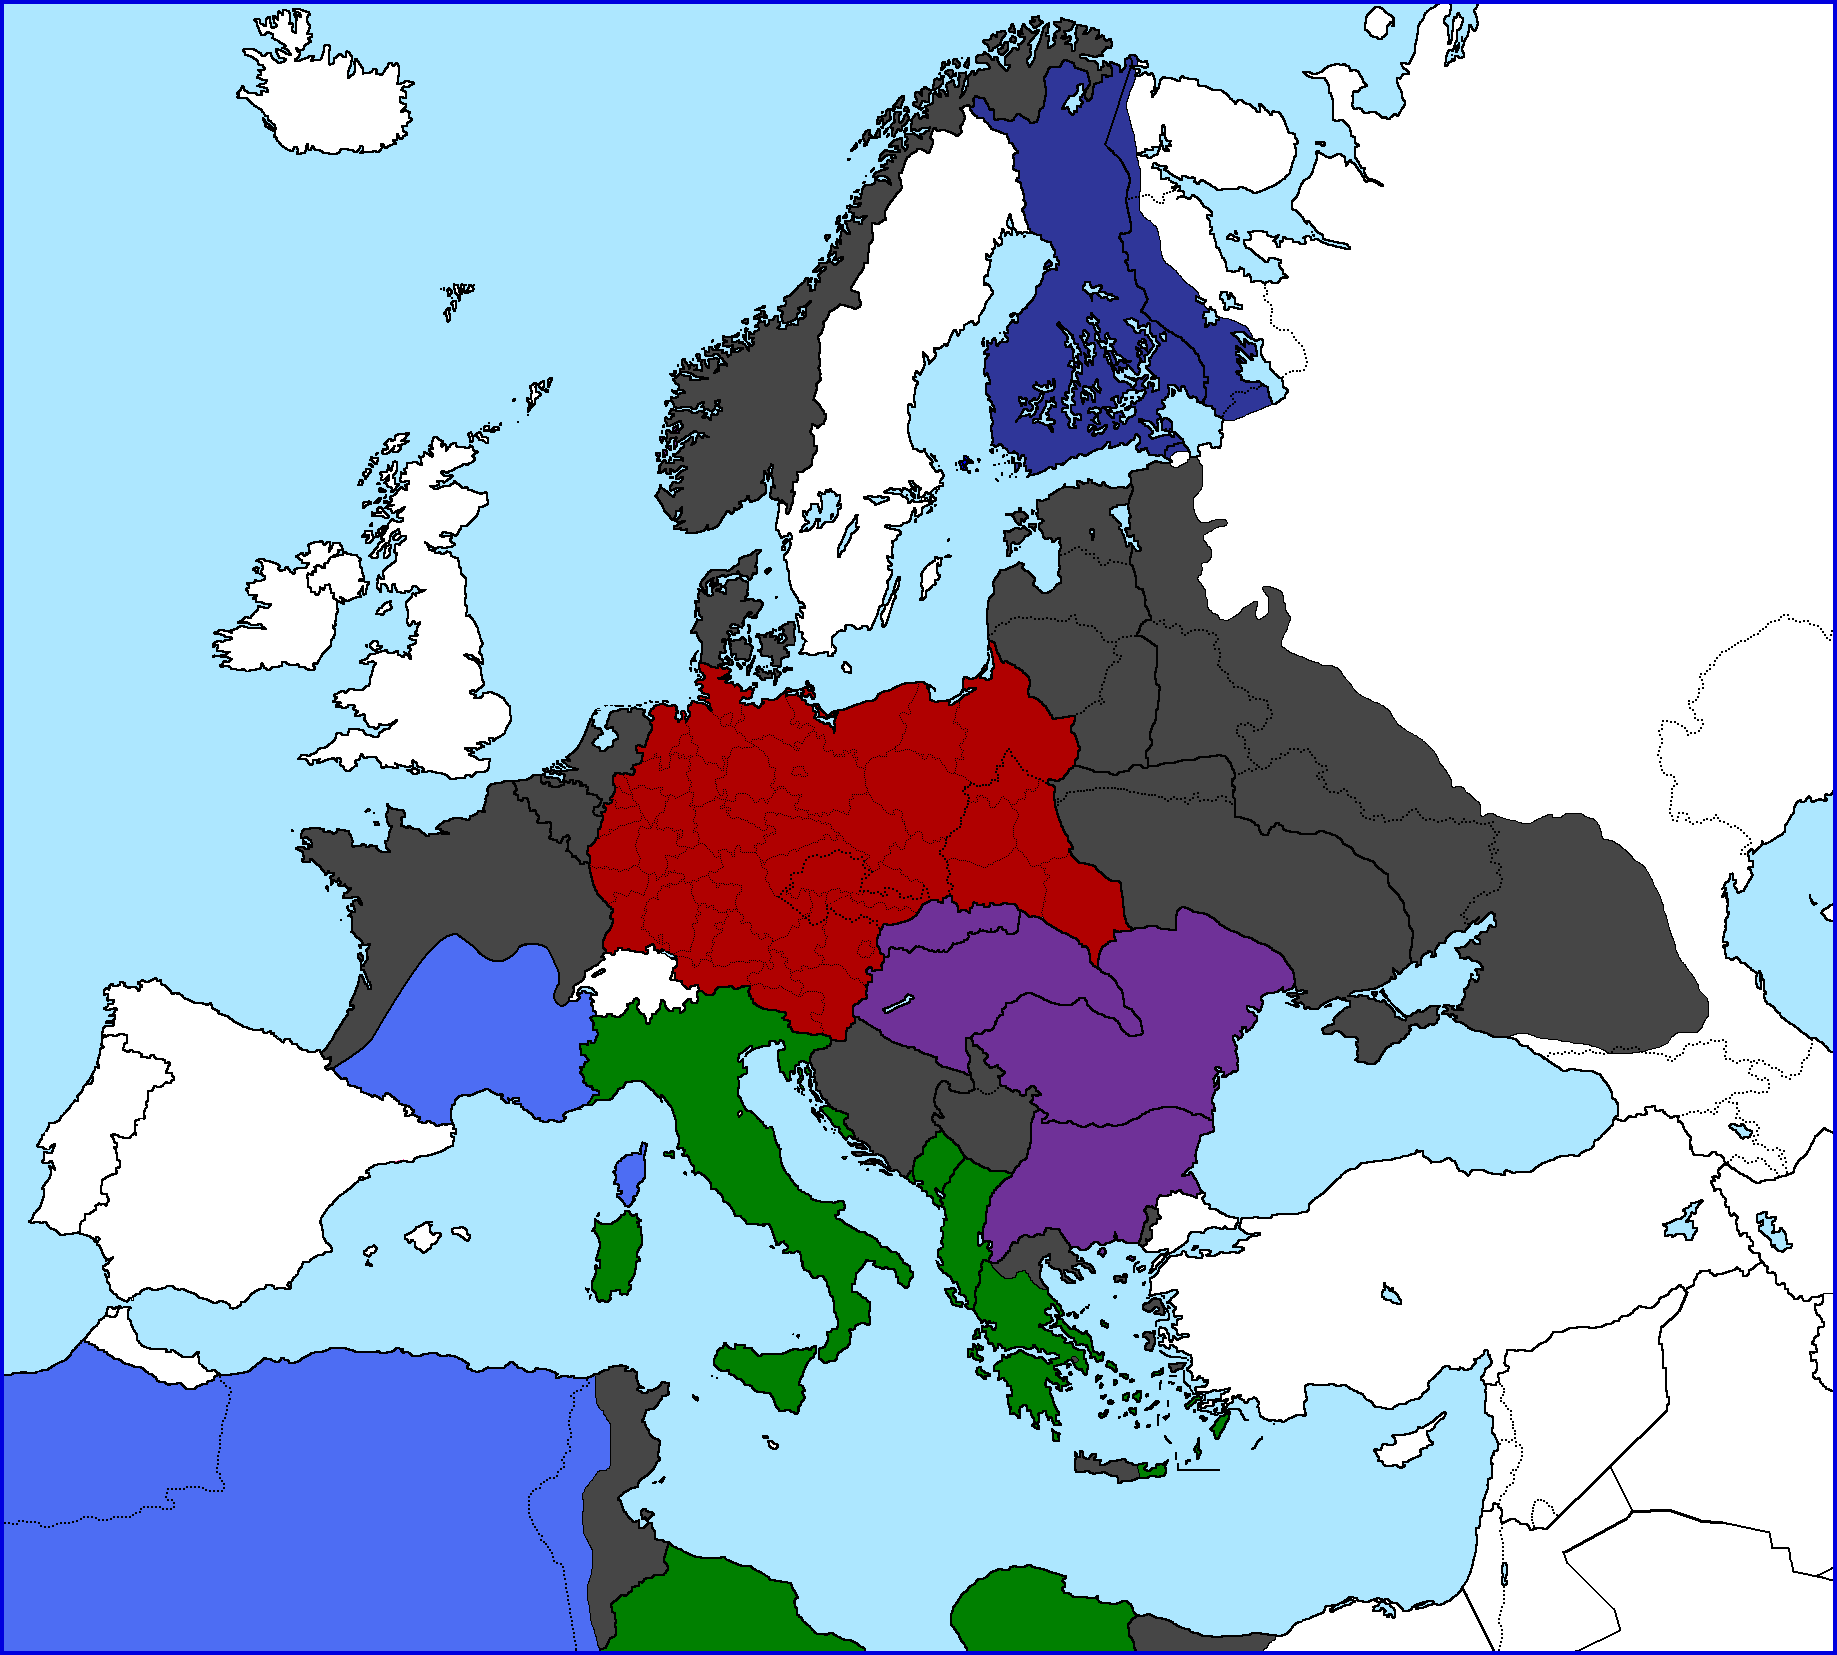 history of german nations before german reich After germany was united by otto von bismarck into the german reich, he determined german politics until 1890 bismarck tried to foster alliances in europe, on one hand to contain france, and on the other hand to consolidate germany's influence in europe.